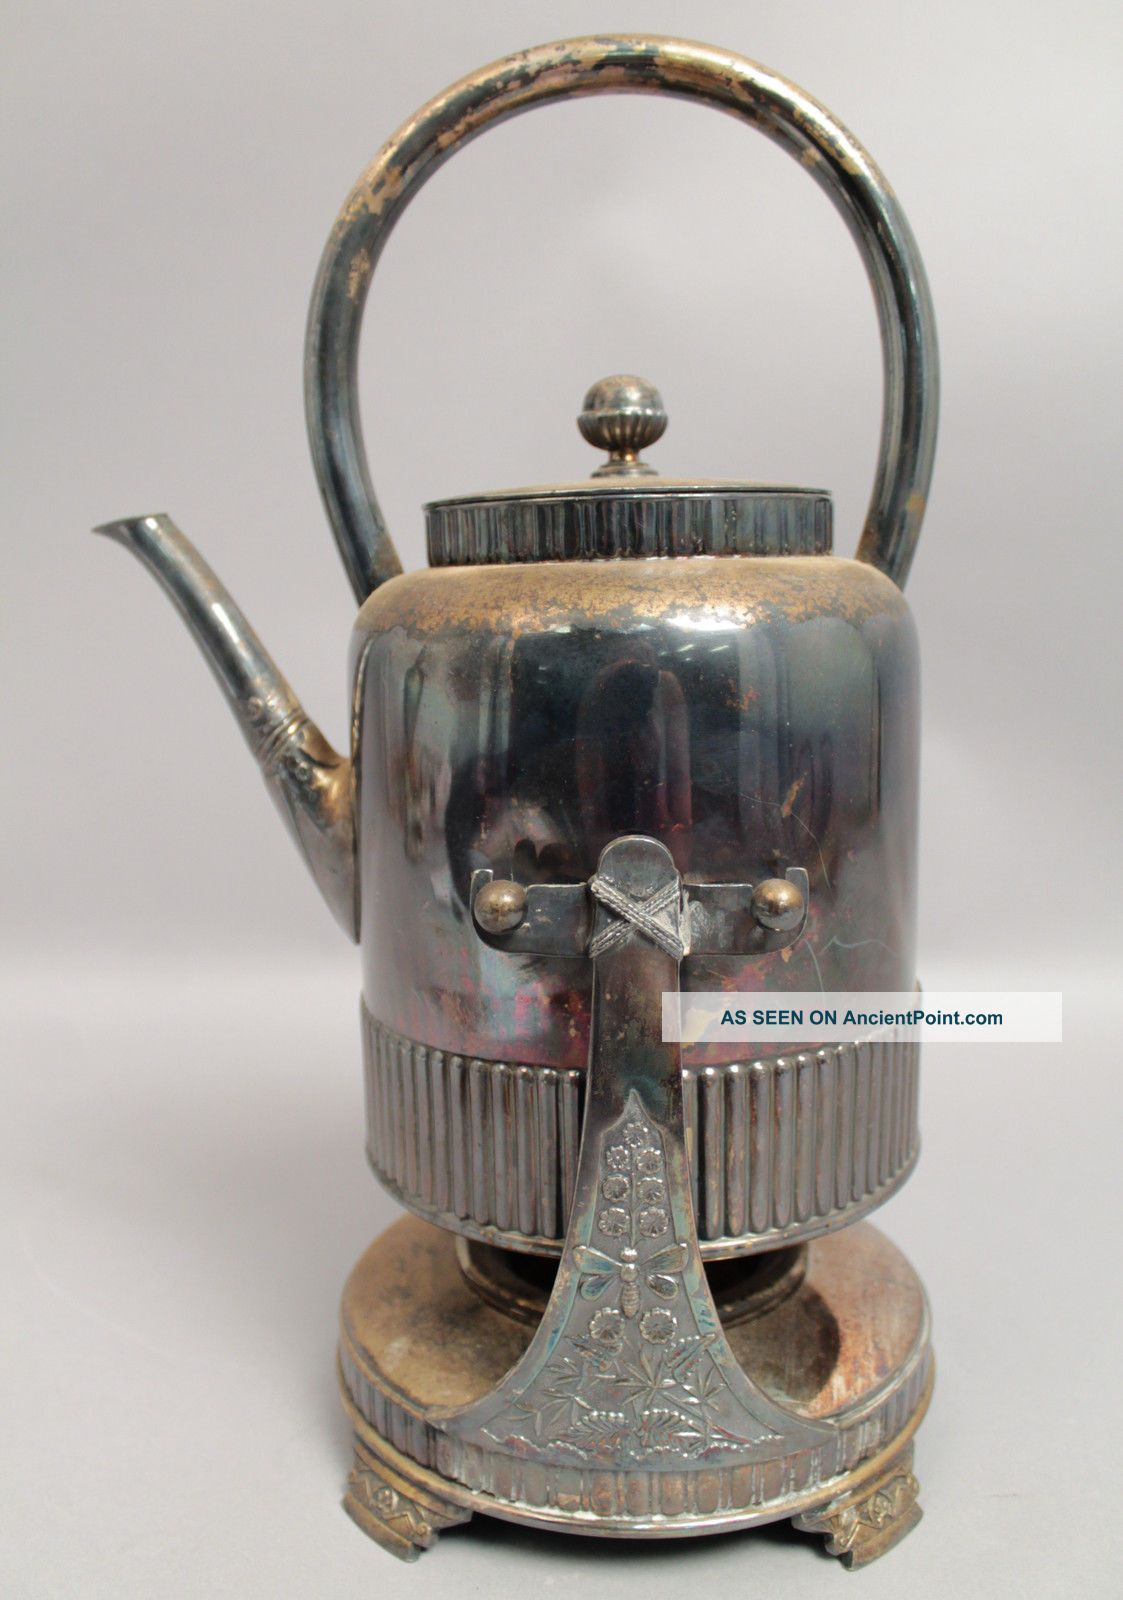 Antique 1880s Aesthetic Bee In Flowers Silver Sp Hot Water Pot On Stand W Burner Other Antique Silverplate photo